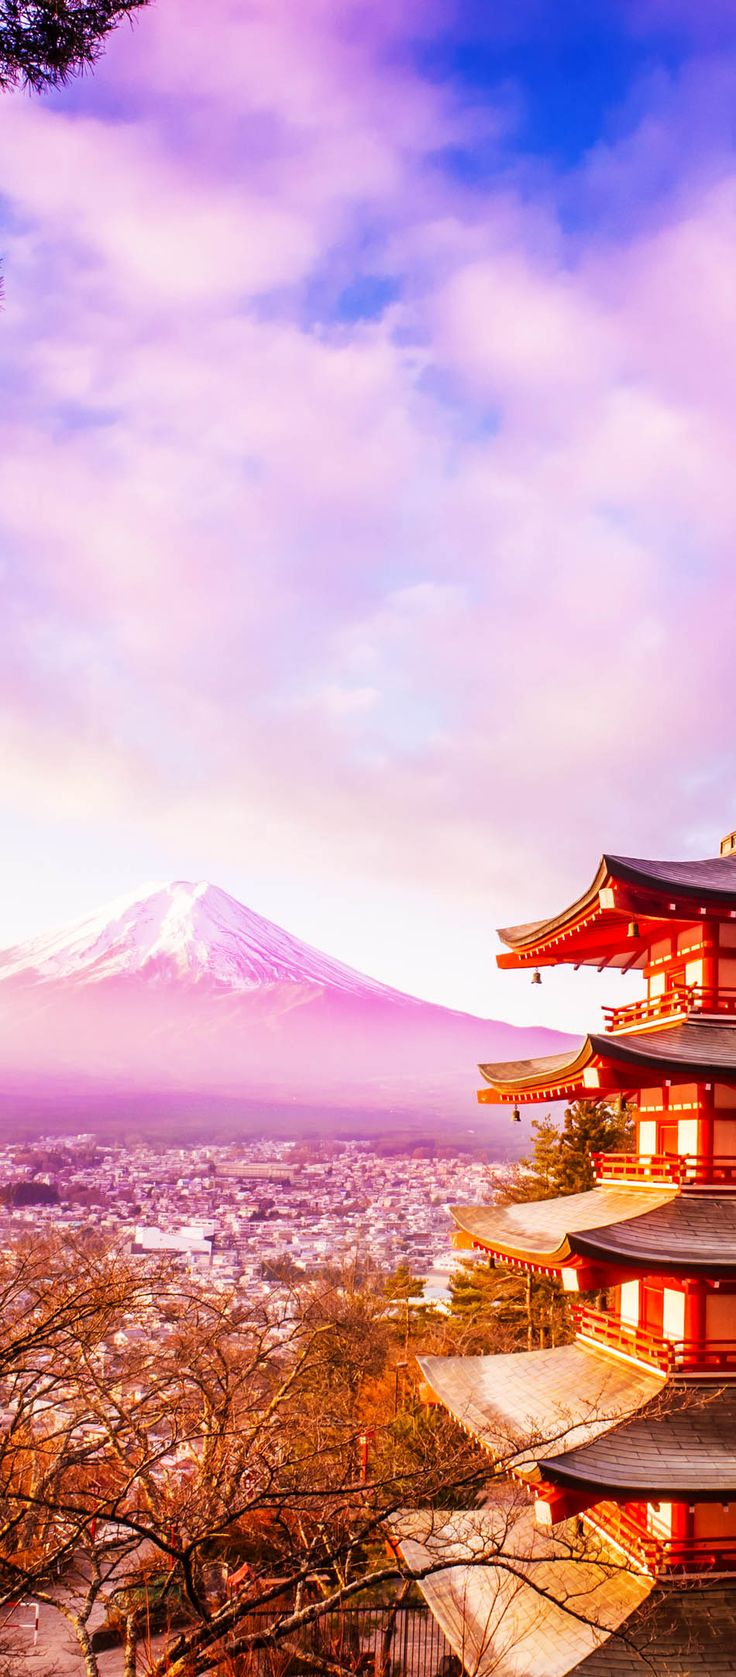 Mount Fuji at Kawakuchiko lake in Japan | Amazing Photography Of Cities and Famous Landmarks From Around The World